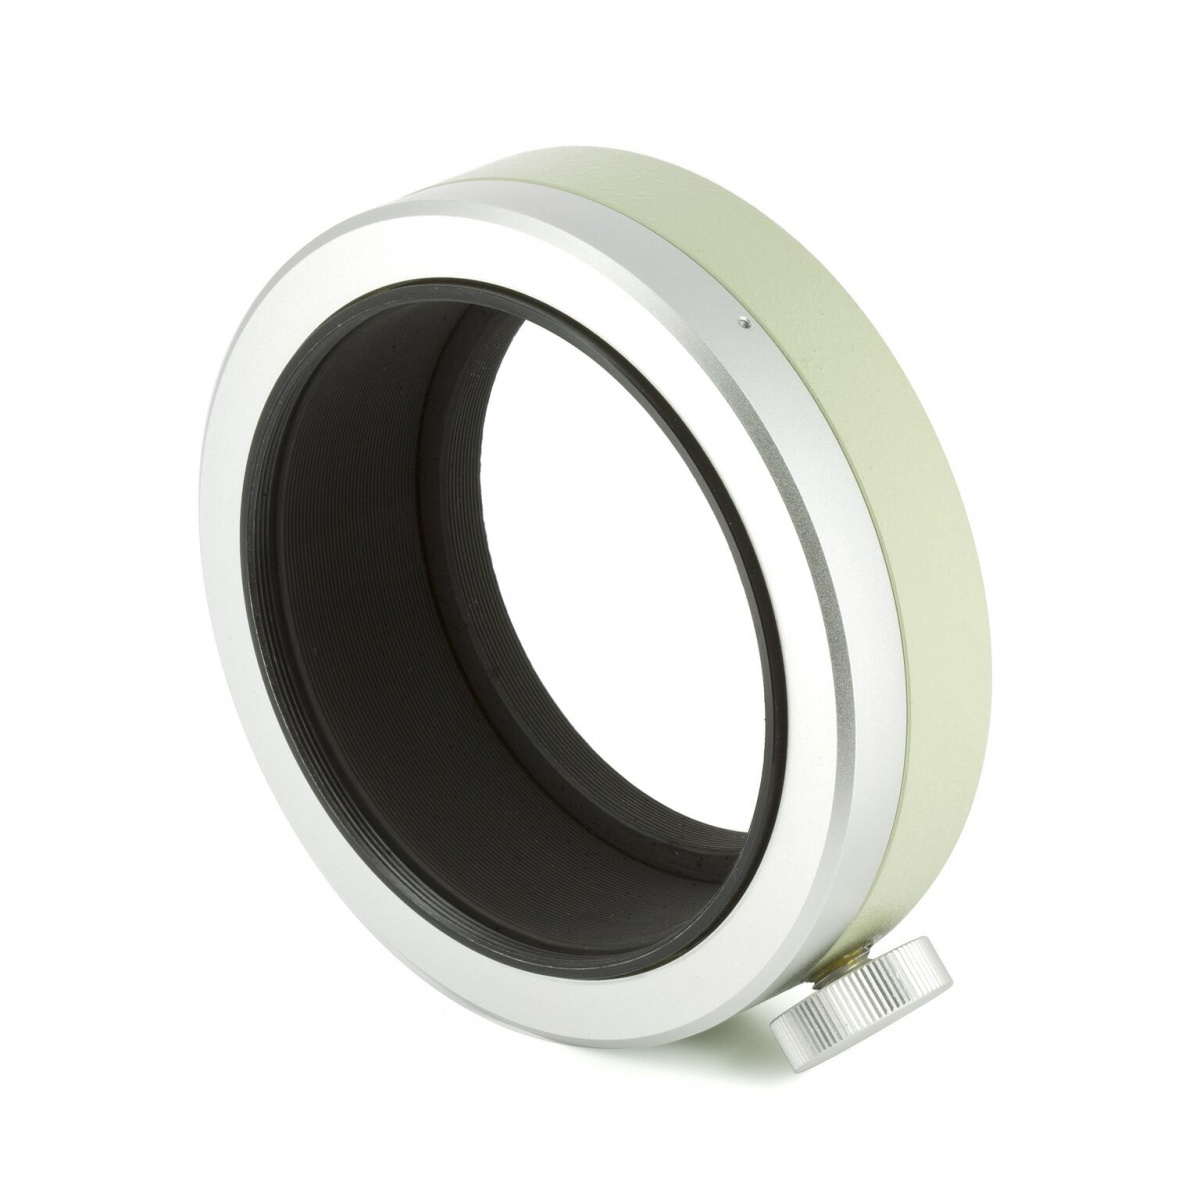 Takahashi Camera angle adjuster for CCA-250